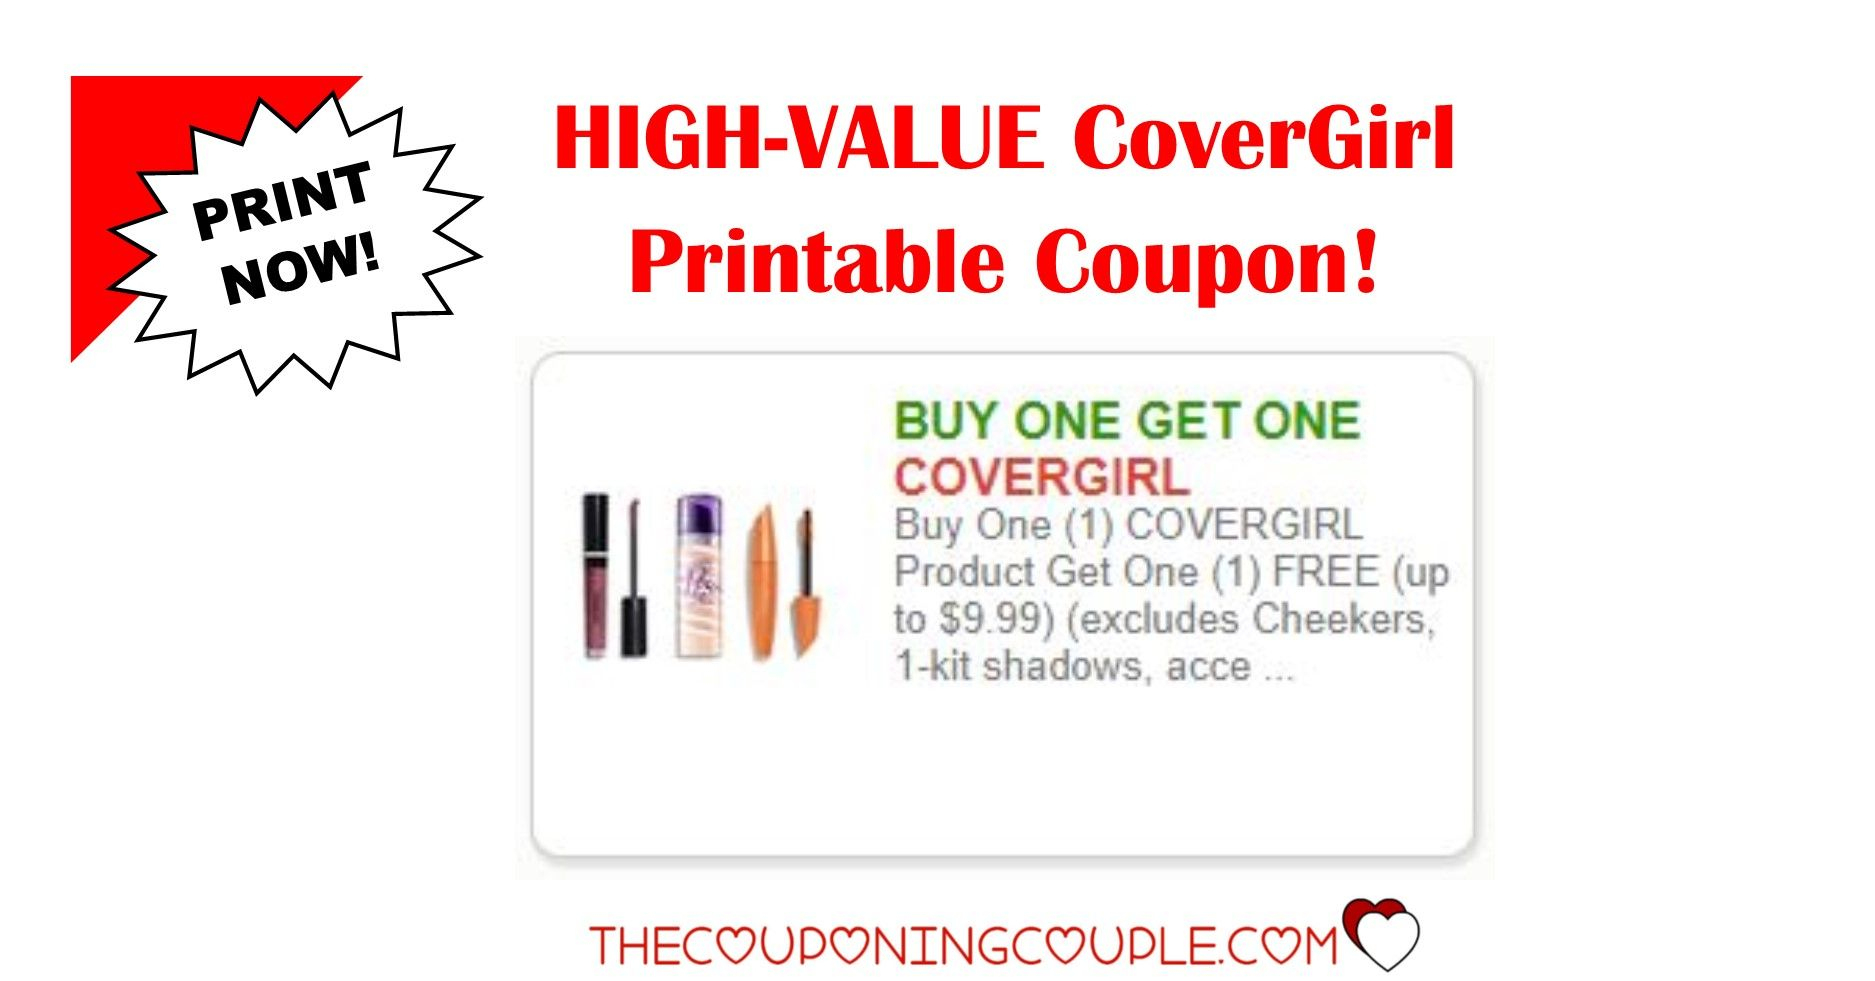 3 Covergirl Printable Coupon ~ Awesome Savings! Print Now! | Store - Free High Value Printable Coupons